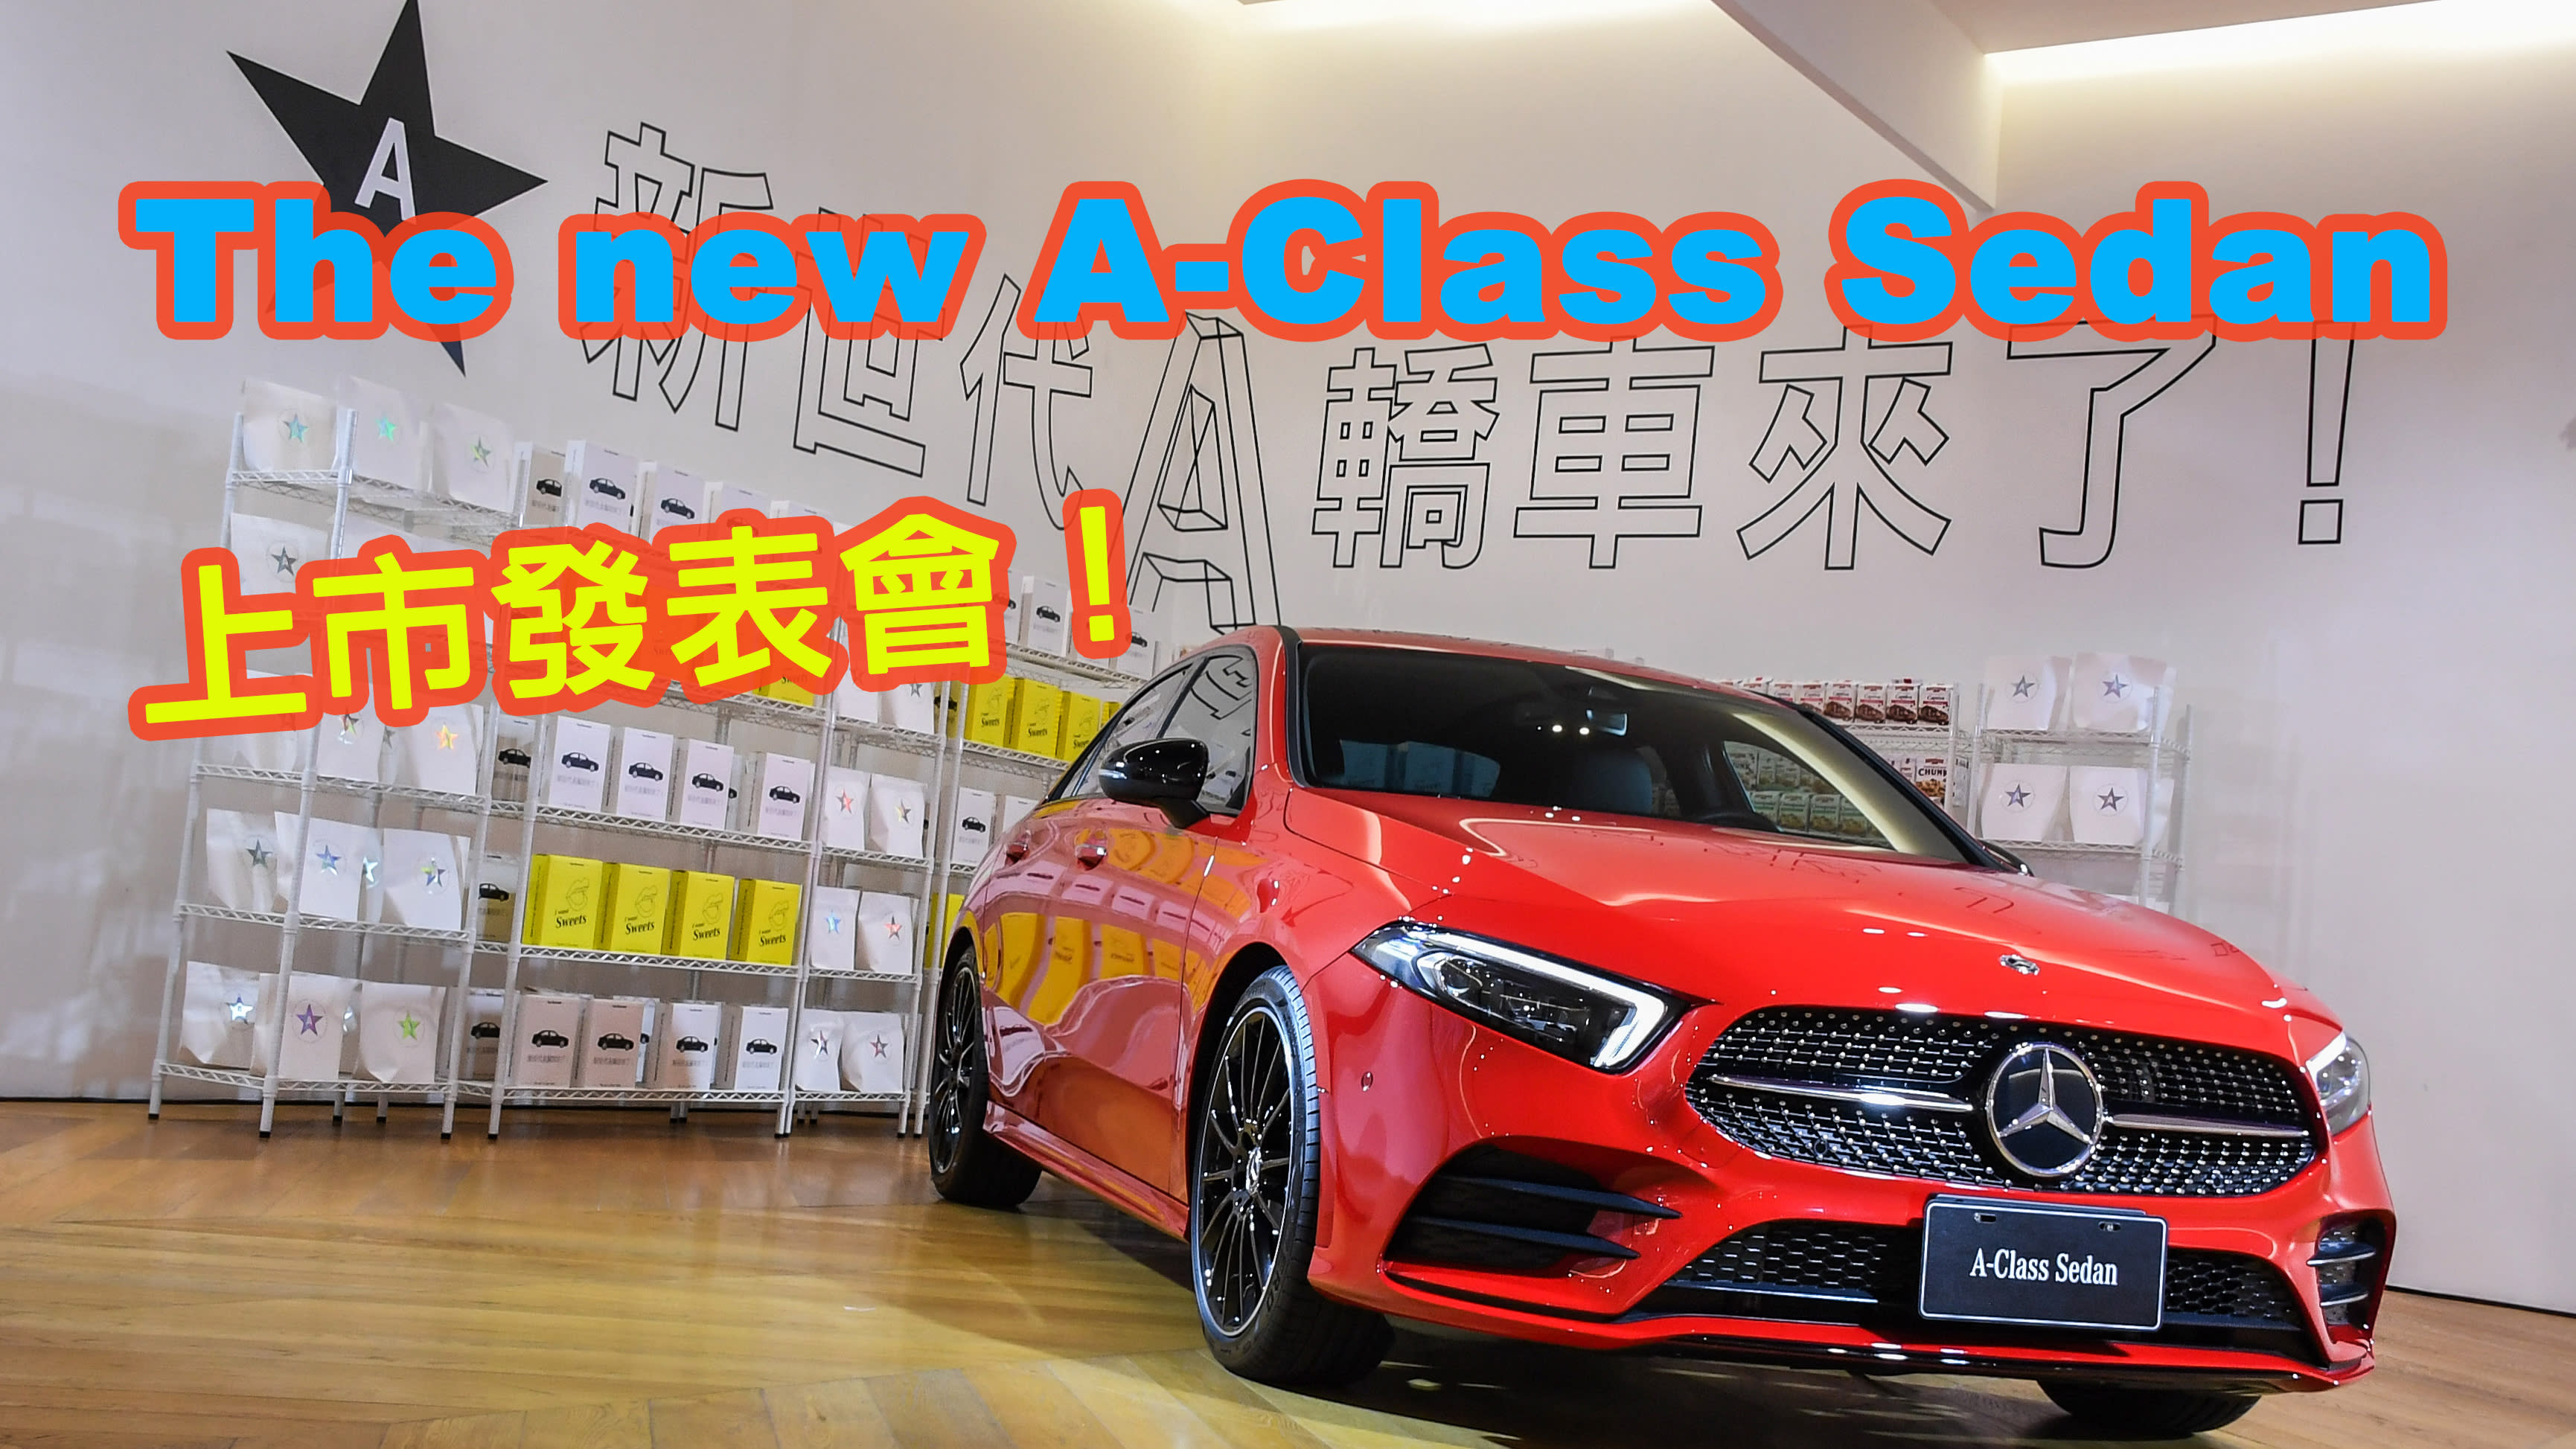 摘星更容易!星世代新成員|Mercedes-Benz A-Class Sedan 上市發表會